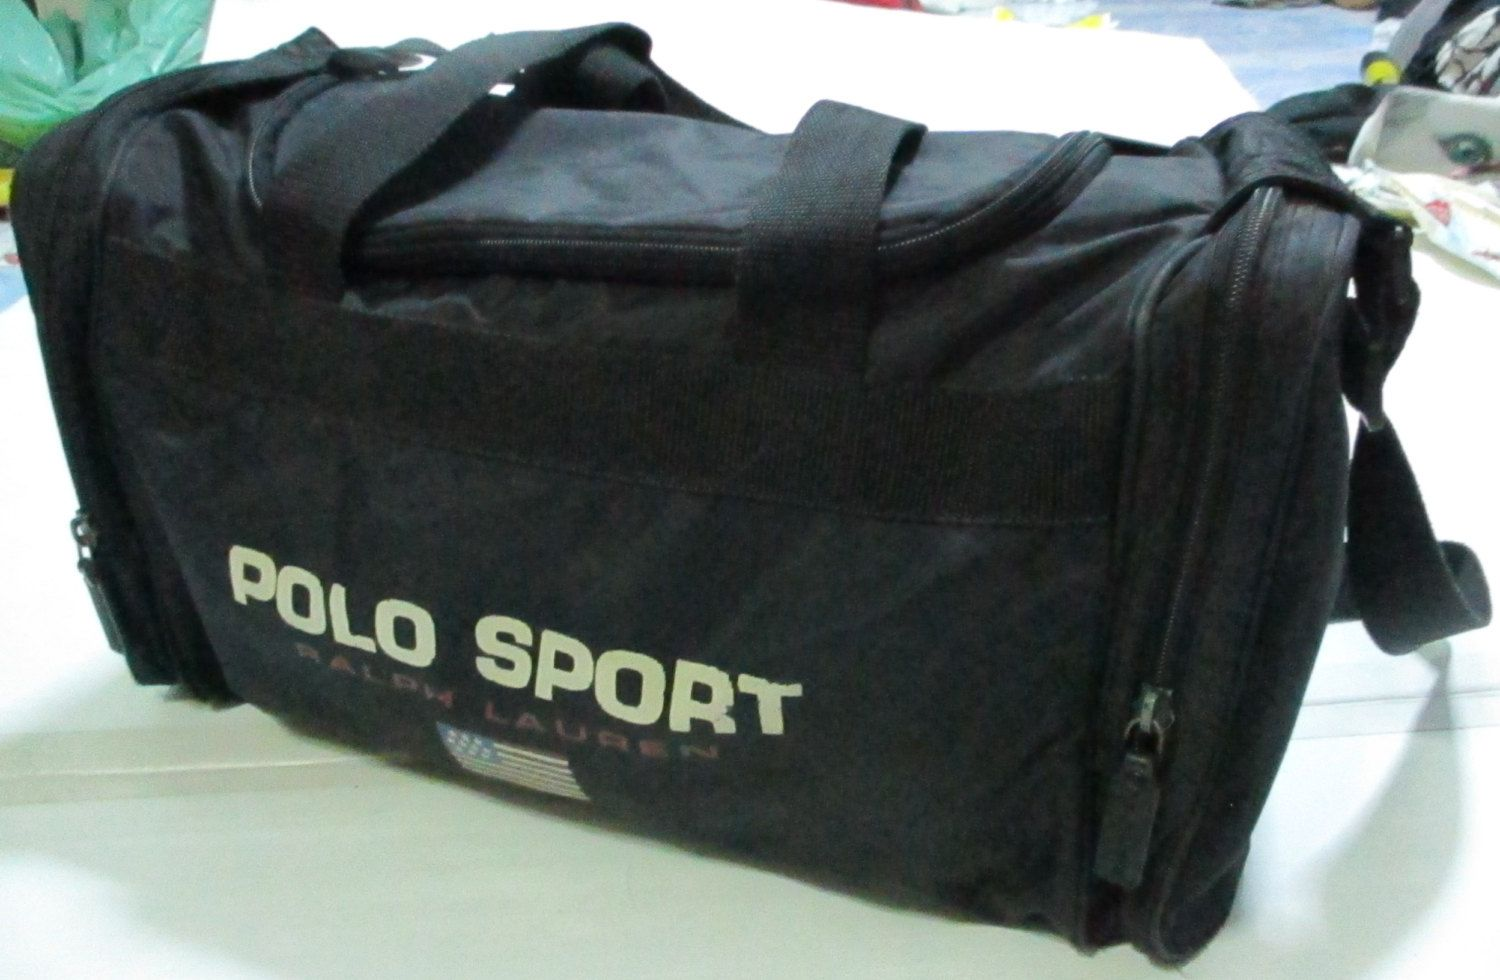 19d9a1cc77 vintage 90s polo sport ralph lauren duffel travel gym bag rare!! by  OHCHYVINTAGE on Etsy